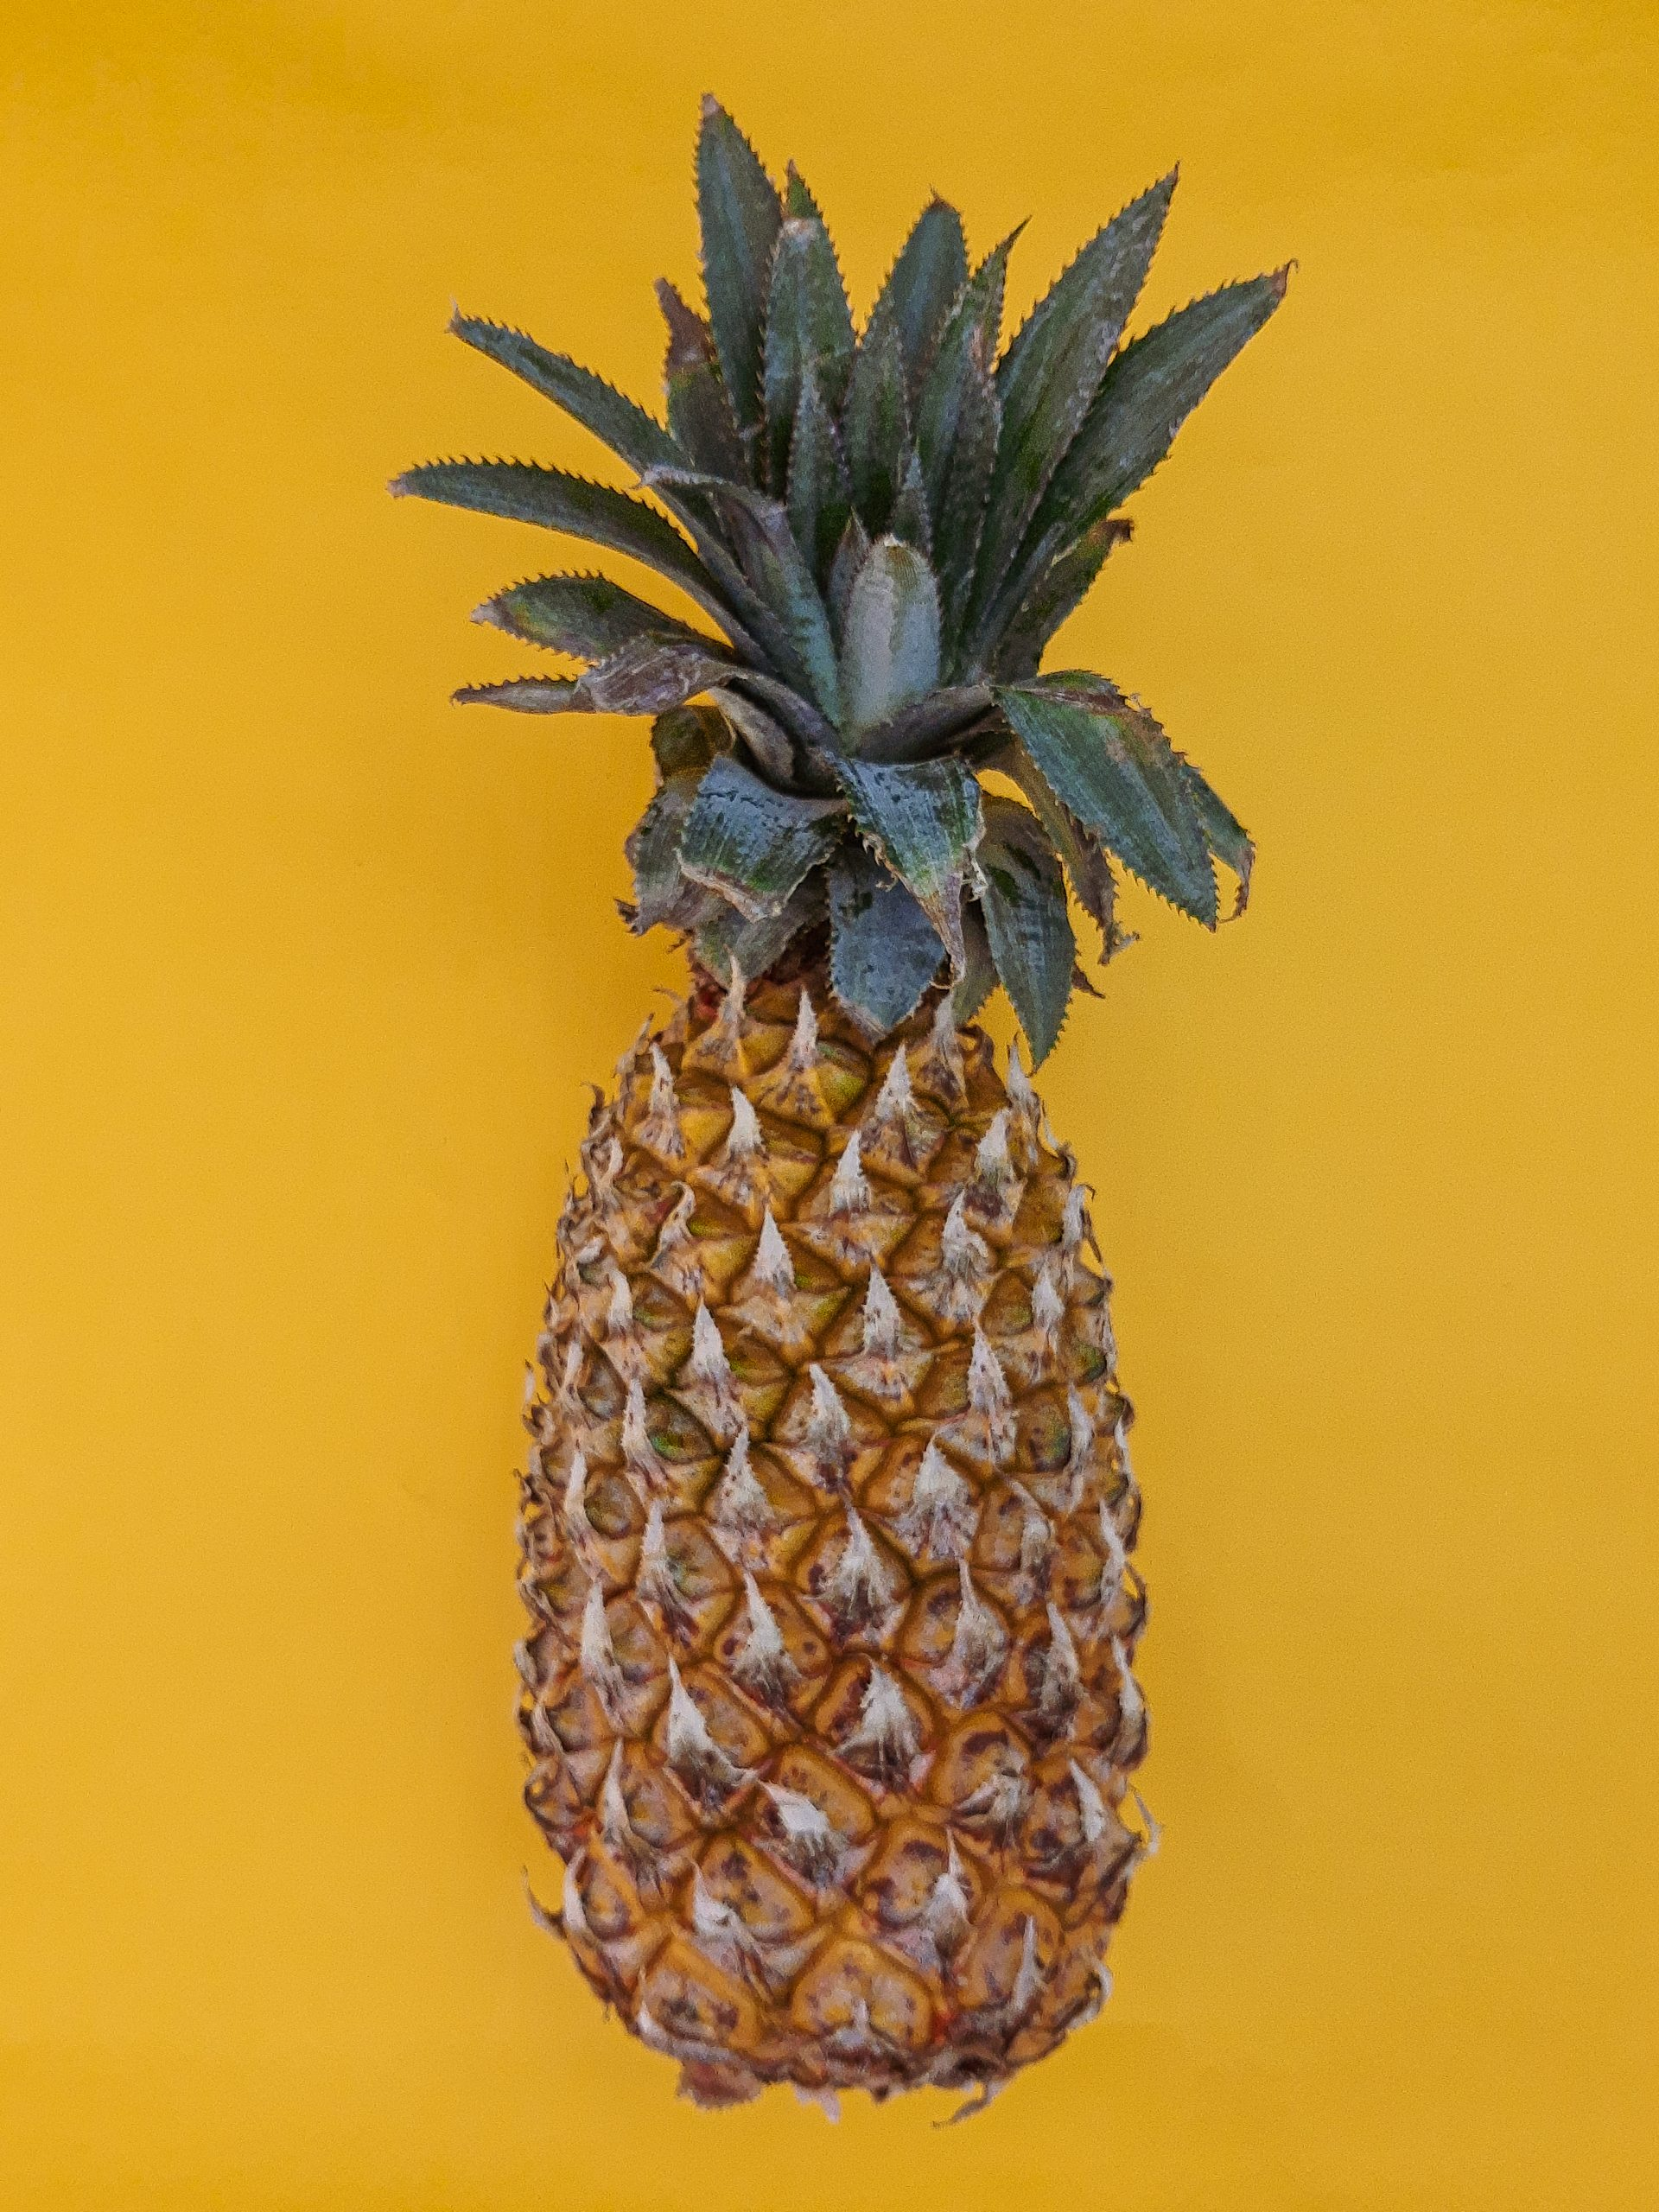 Flatlay picture of a healthy pineapple fruit